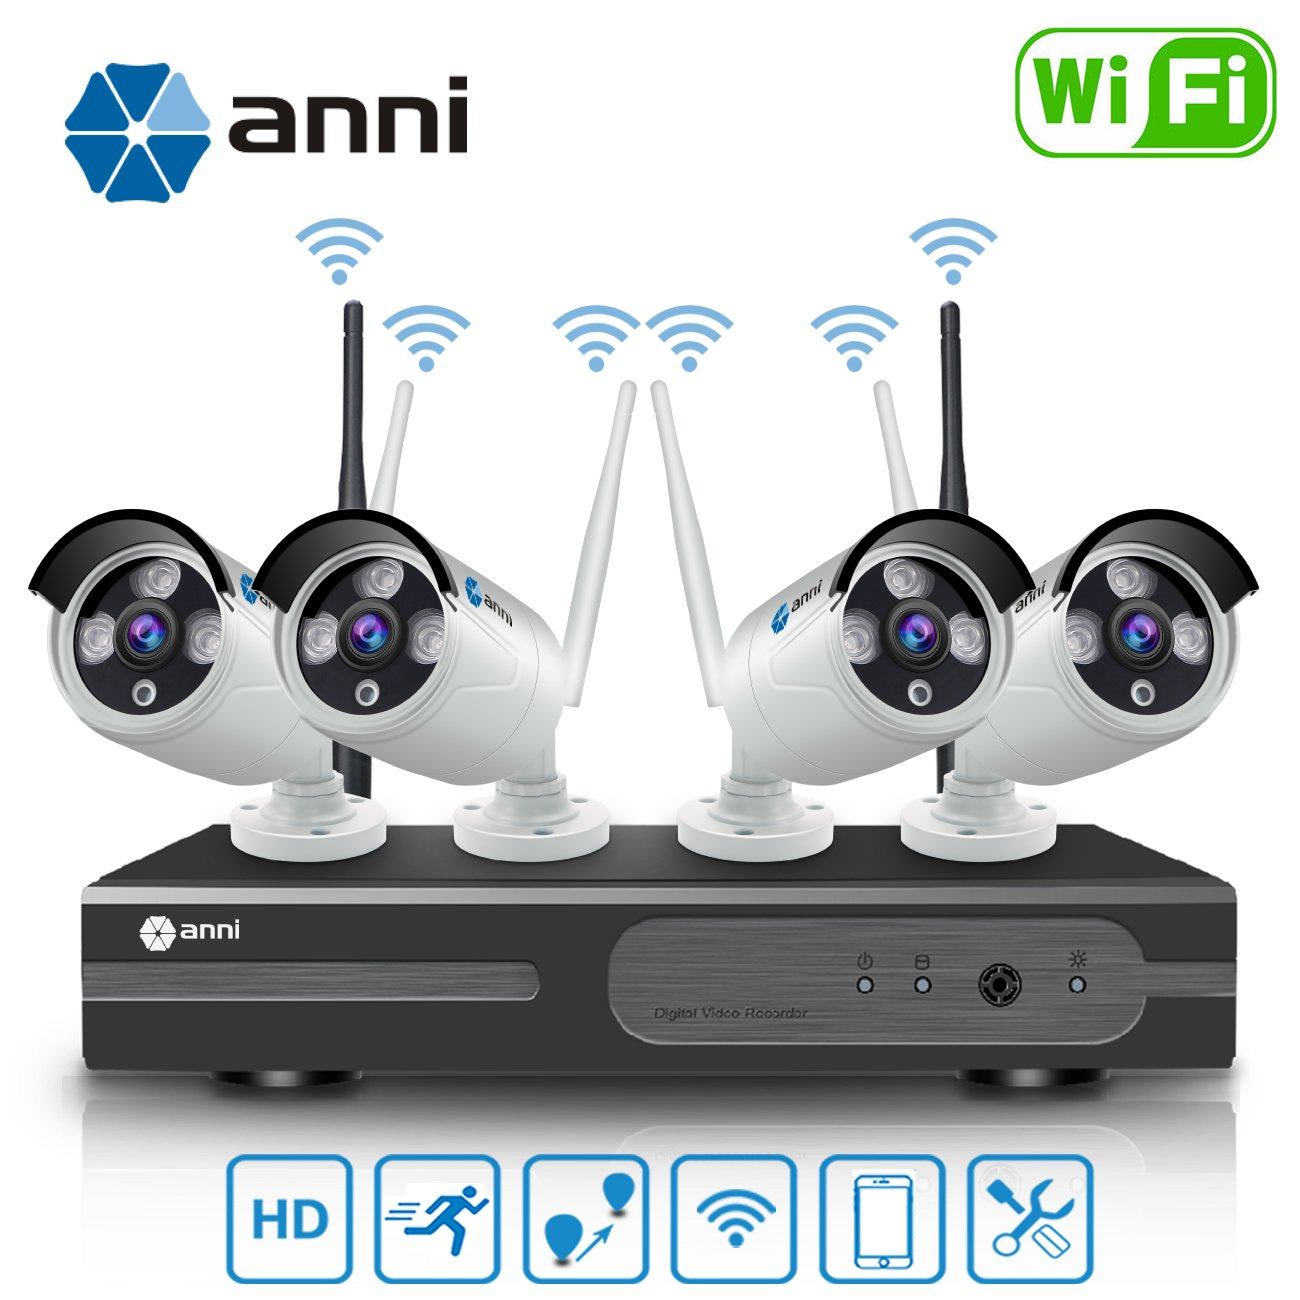 Anni 720P 4CH HD Wireless Security Camera WiFi NVR Kit CCTV Surveillance Systems,(4) 1.0MP Megapixel Weatherproof Wireless Bullet IP Cameras,65ft Night Vision,P2P,No Video Cable Needed,NO HDD by anni